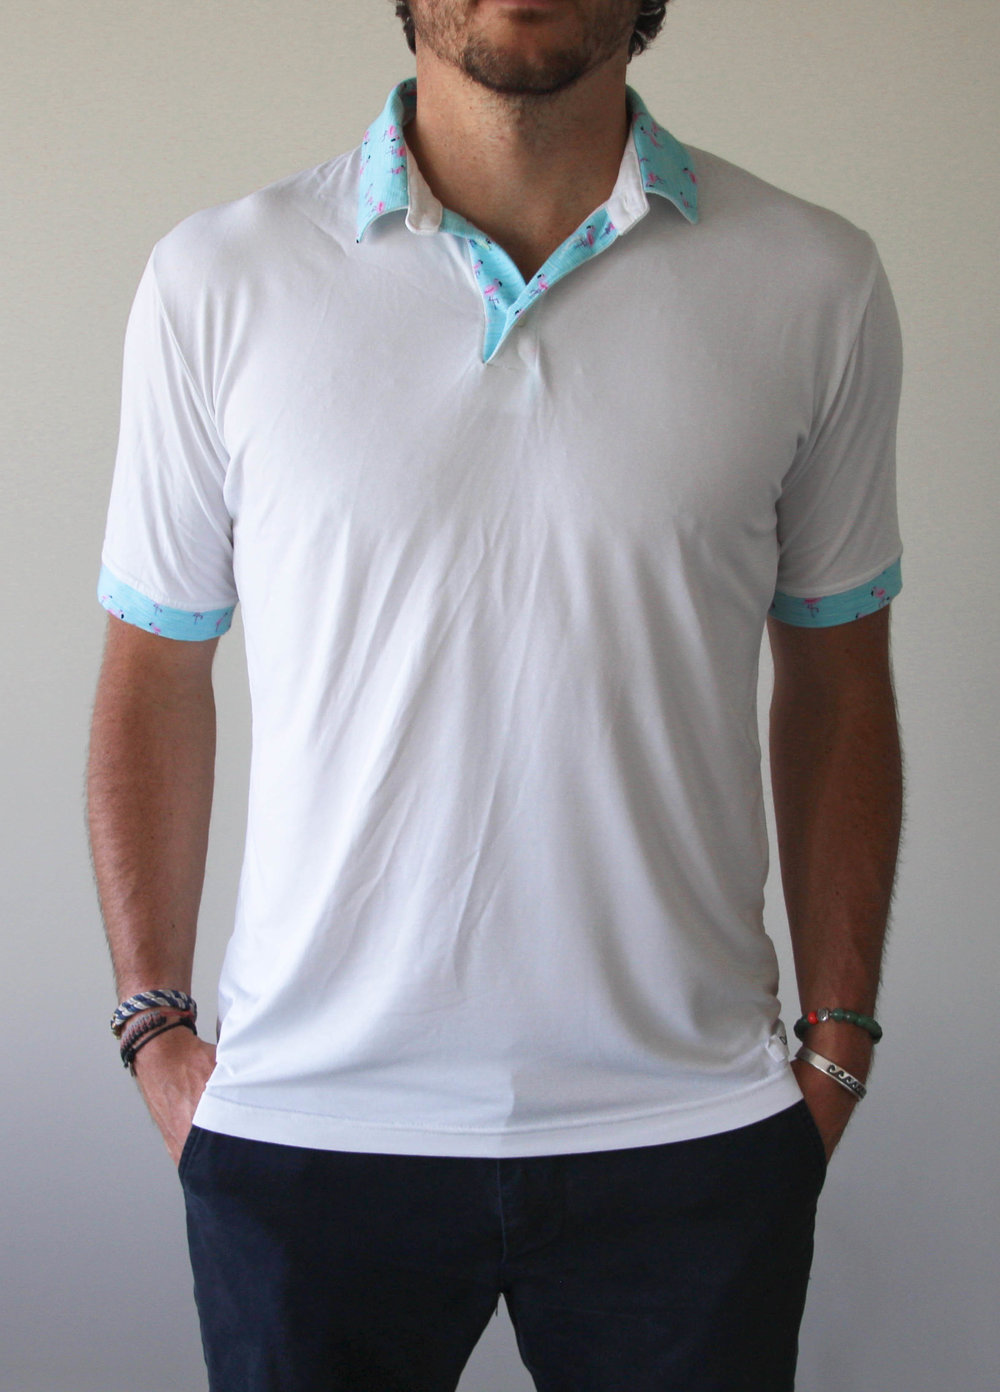 Spring & Summer '17 - White and Aqua Flamingo Polo $130 92% Rayon 8% Spandex